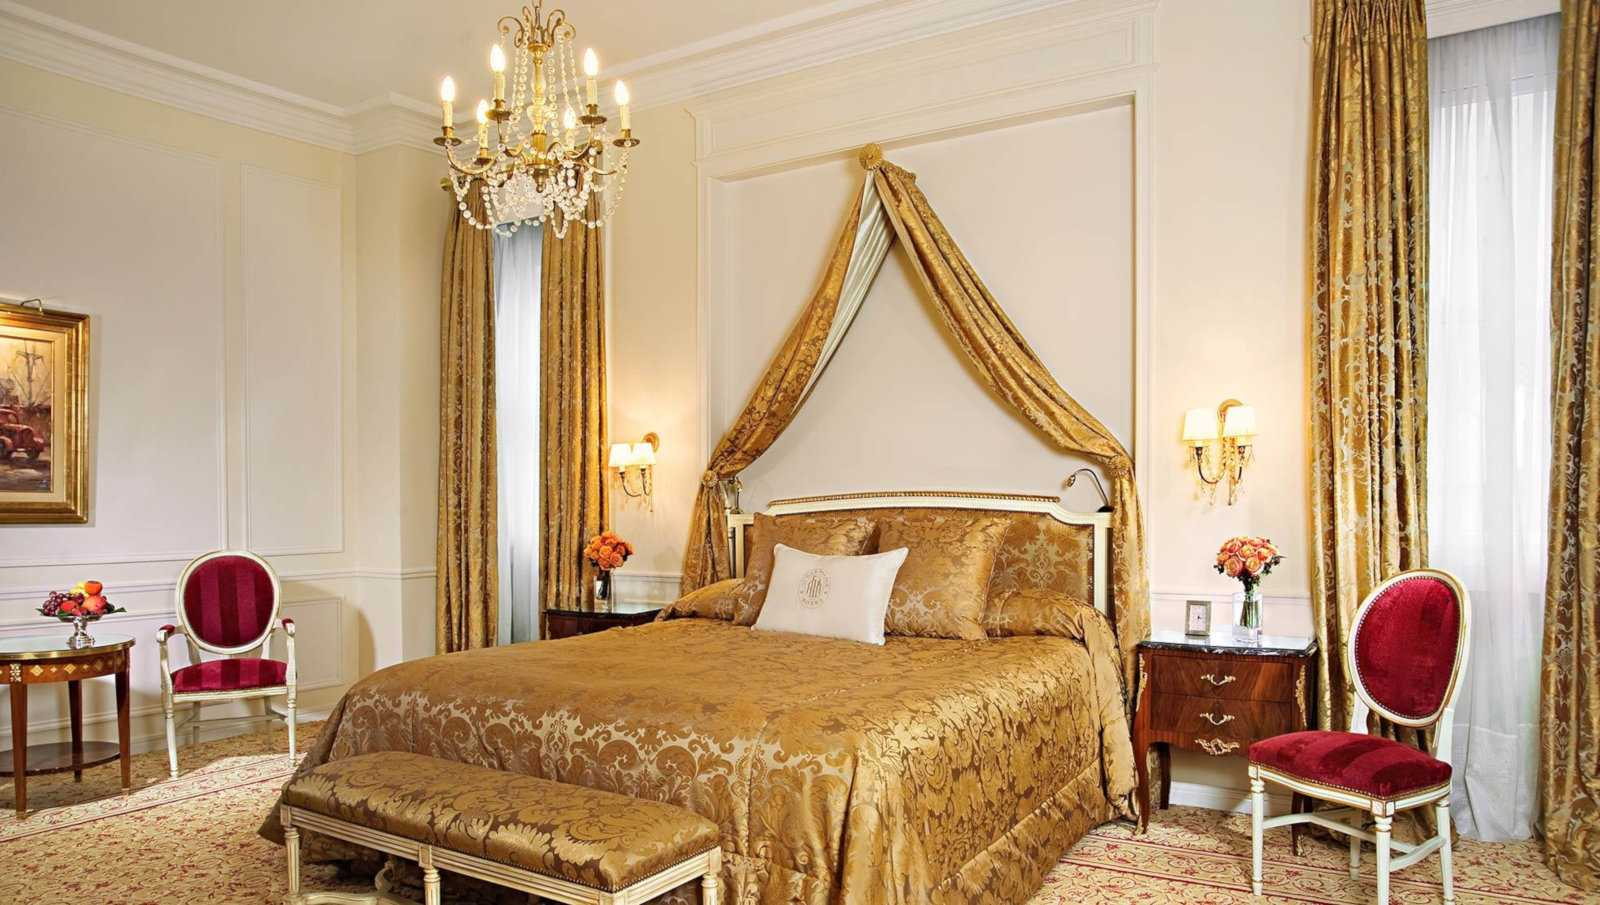 Alvear Palace is a luxurious and gay friendly hotel in Buenos Aires.